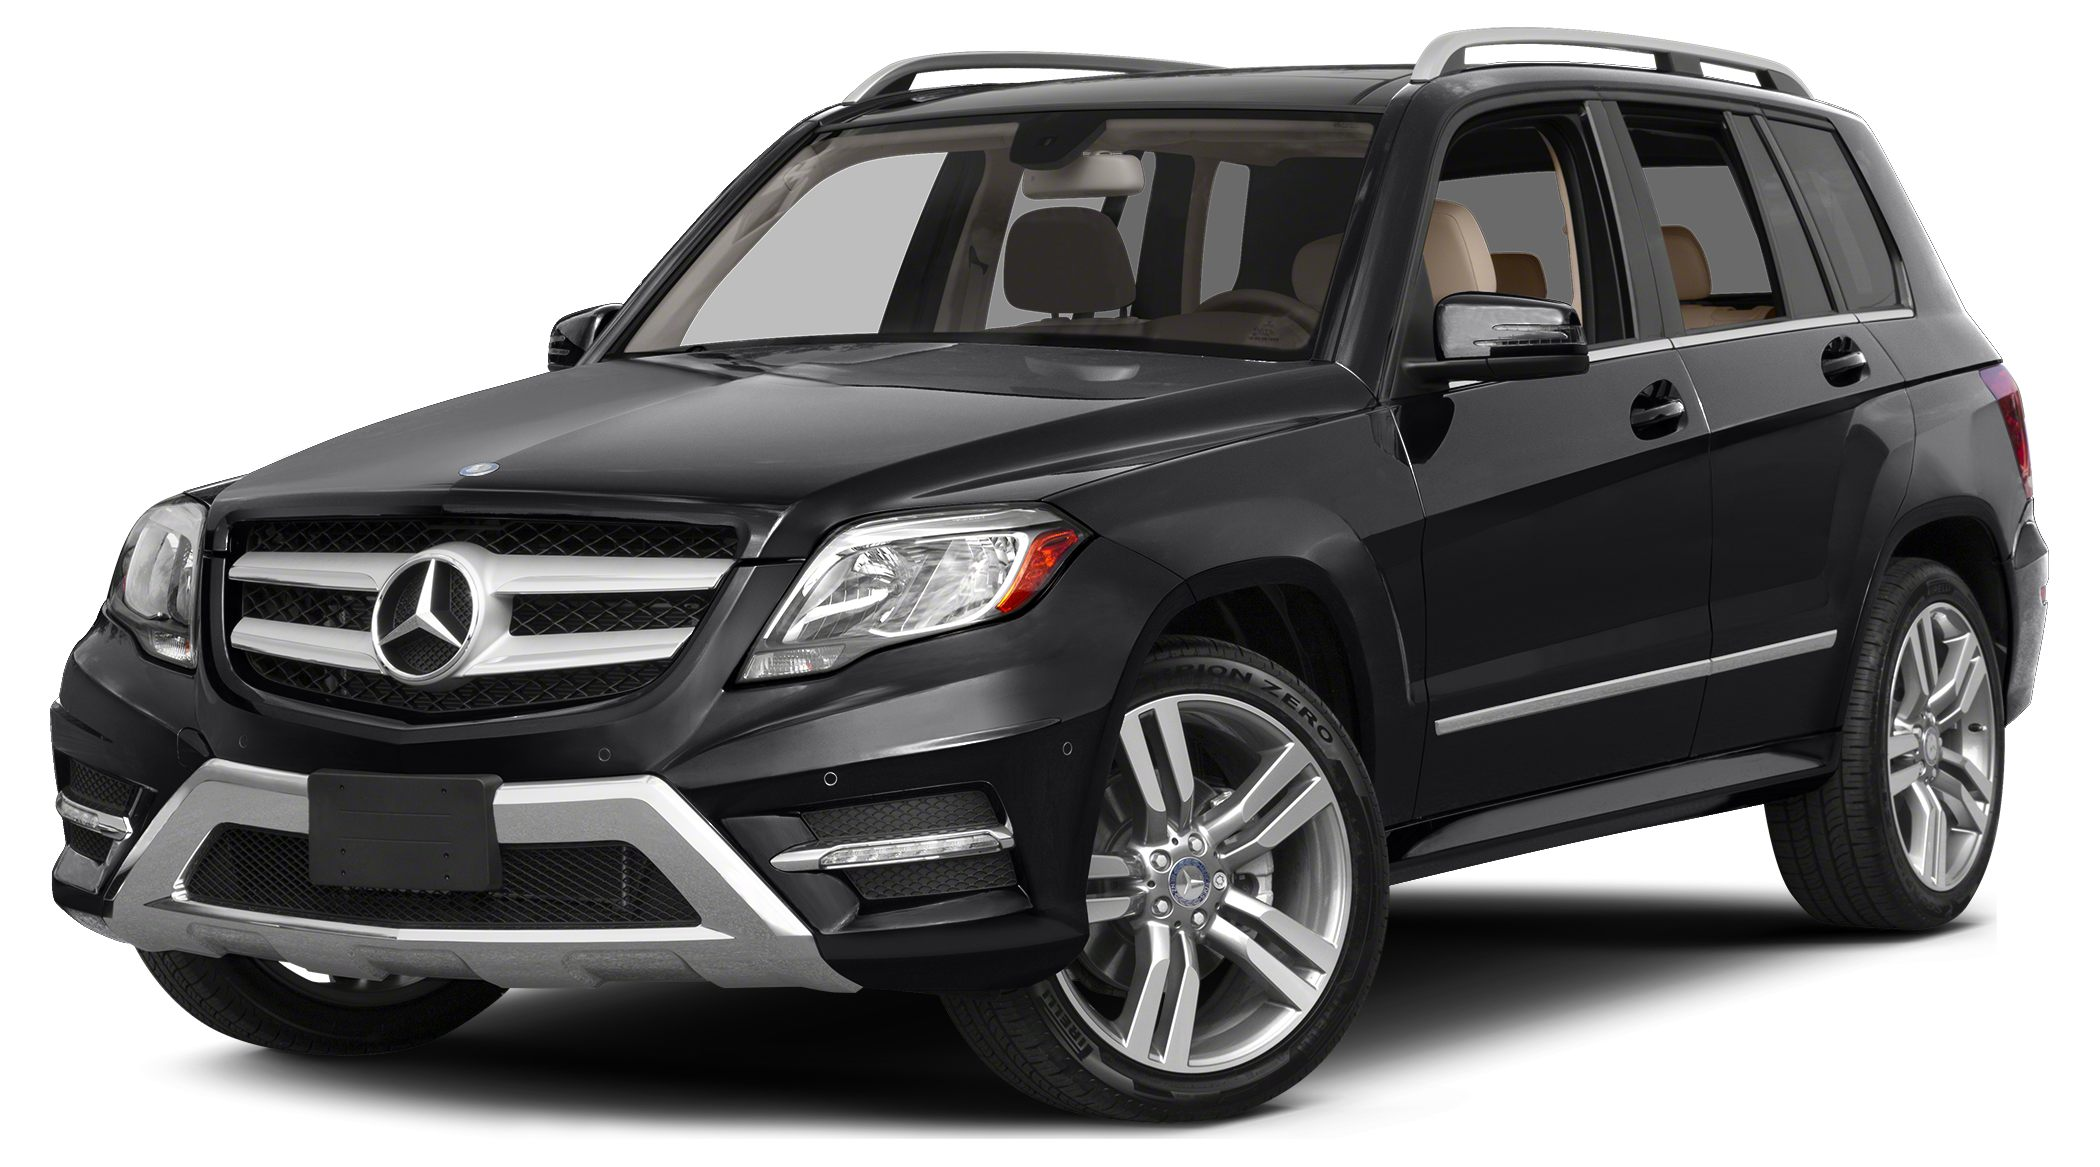 2013 MERCEDES GLK-Class GLK350 4MATIC Visit Best Auto Group online at bronxbestautocom to see mor